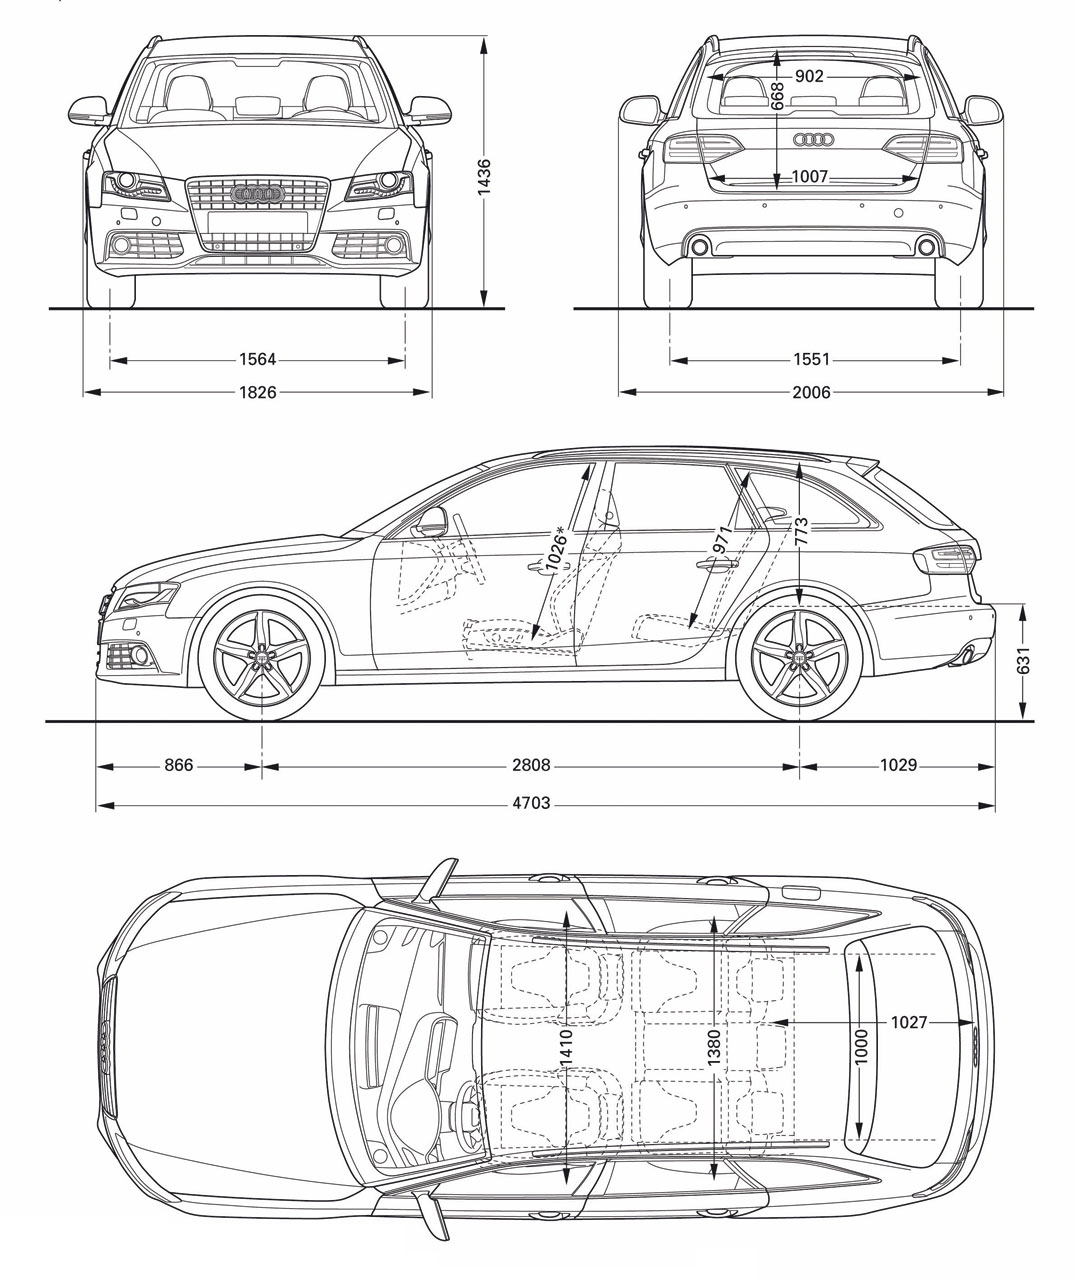 Audi a4 avant blueprint dimensions car body design audi a4 avant blueprint dimensions malvernweather Image collections